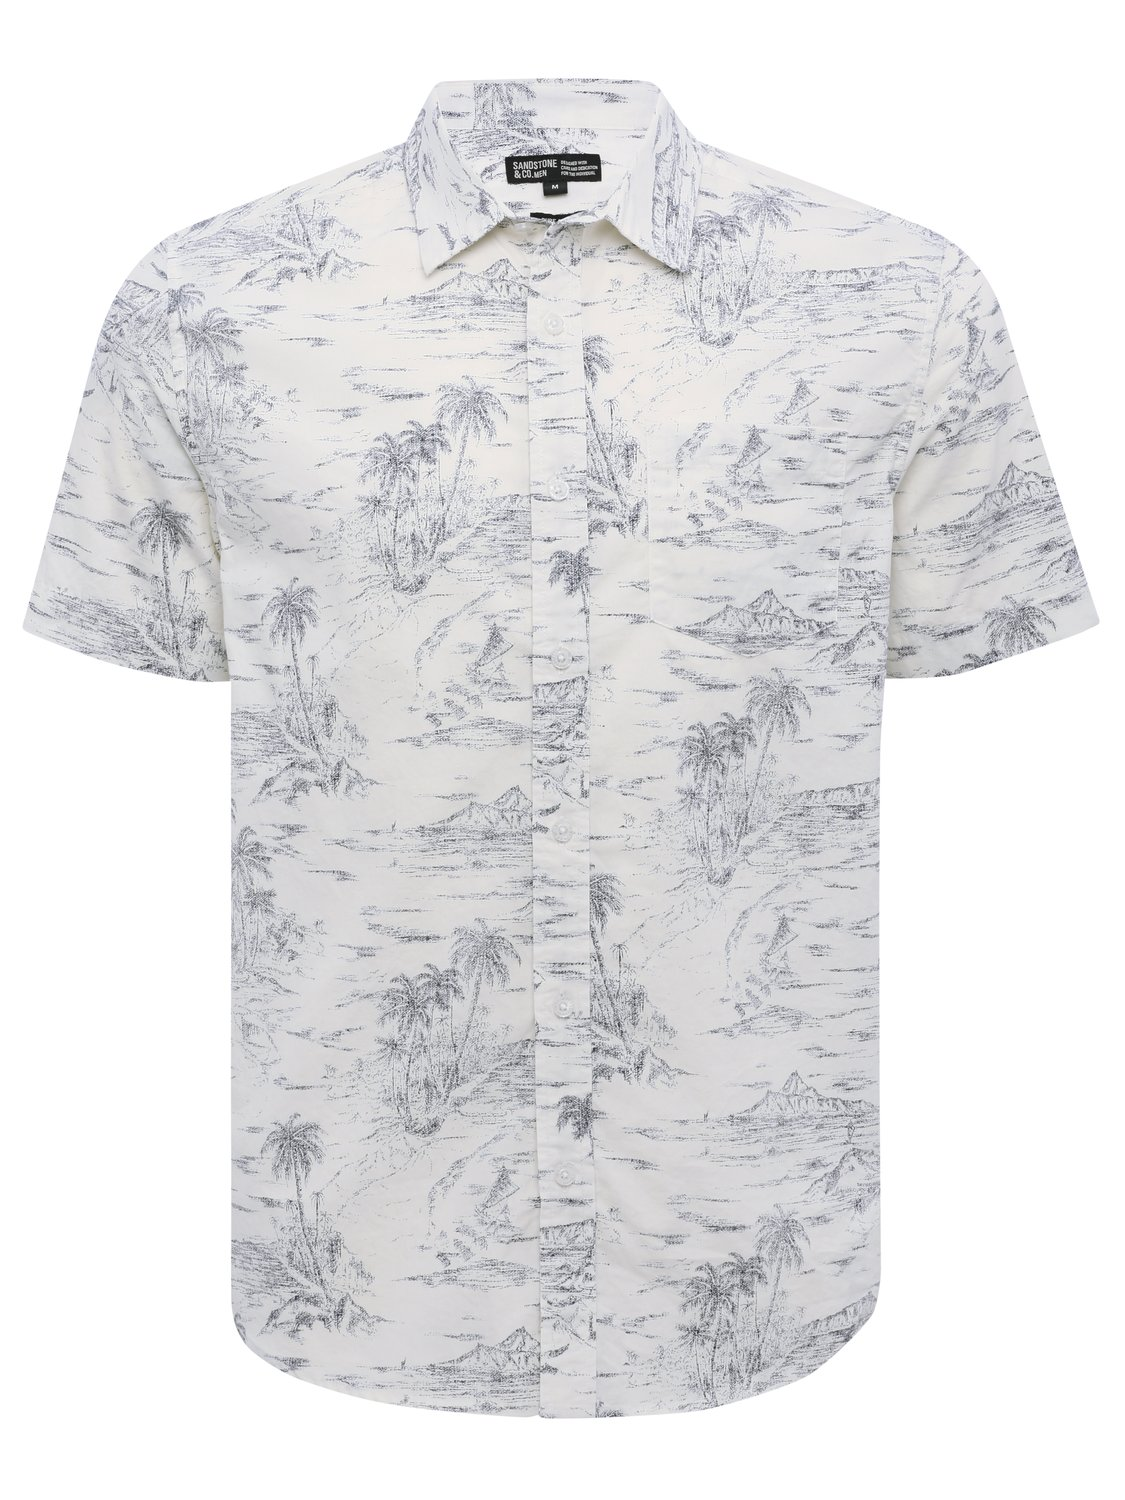 Mens cotton short sleeve palm tree print casual button up collar shirt   Blue